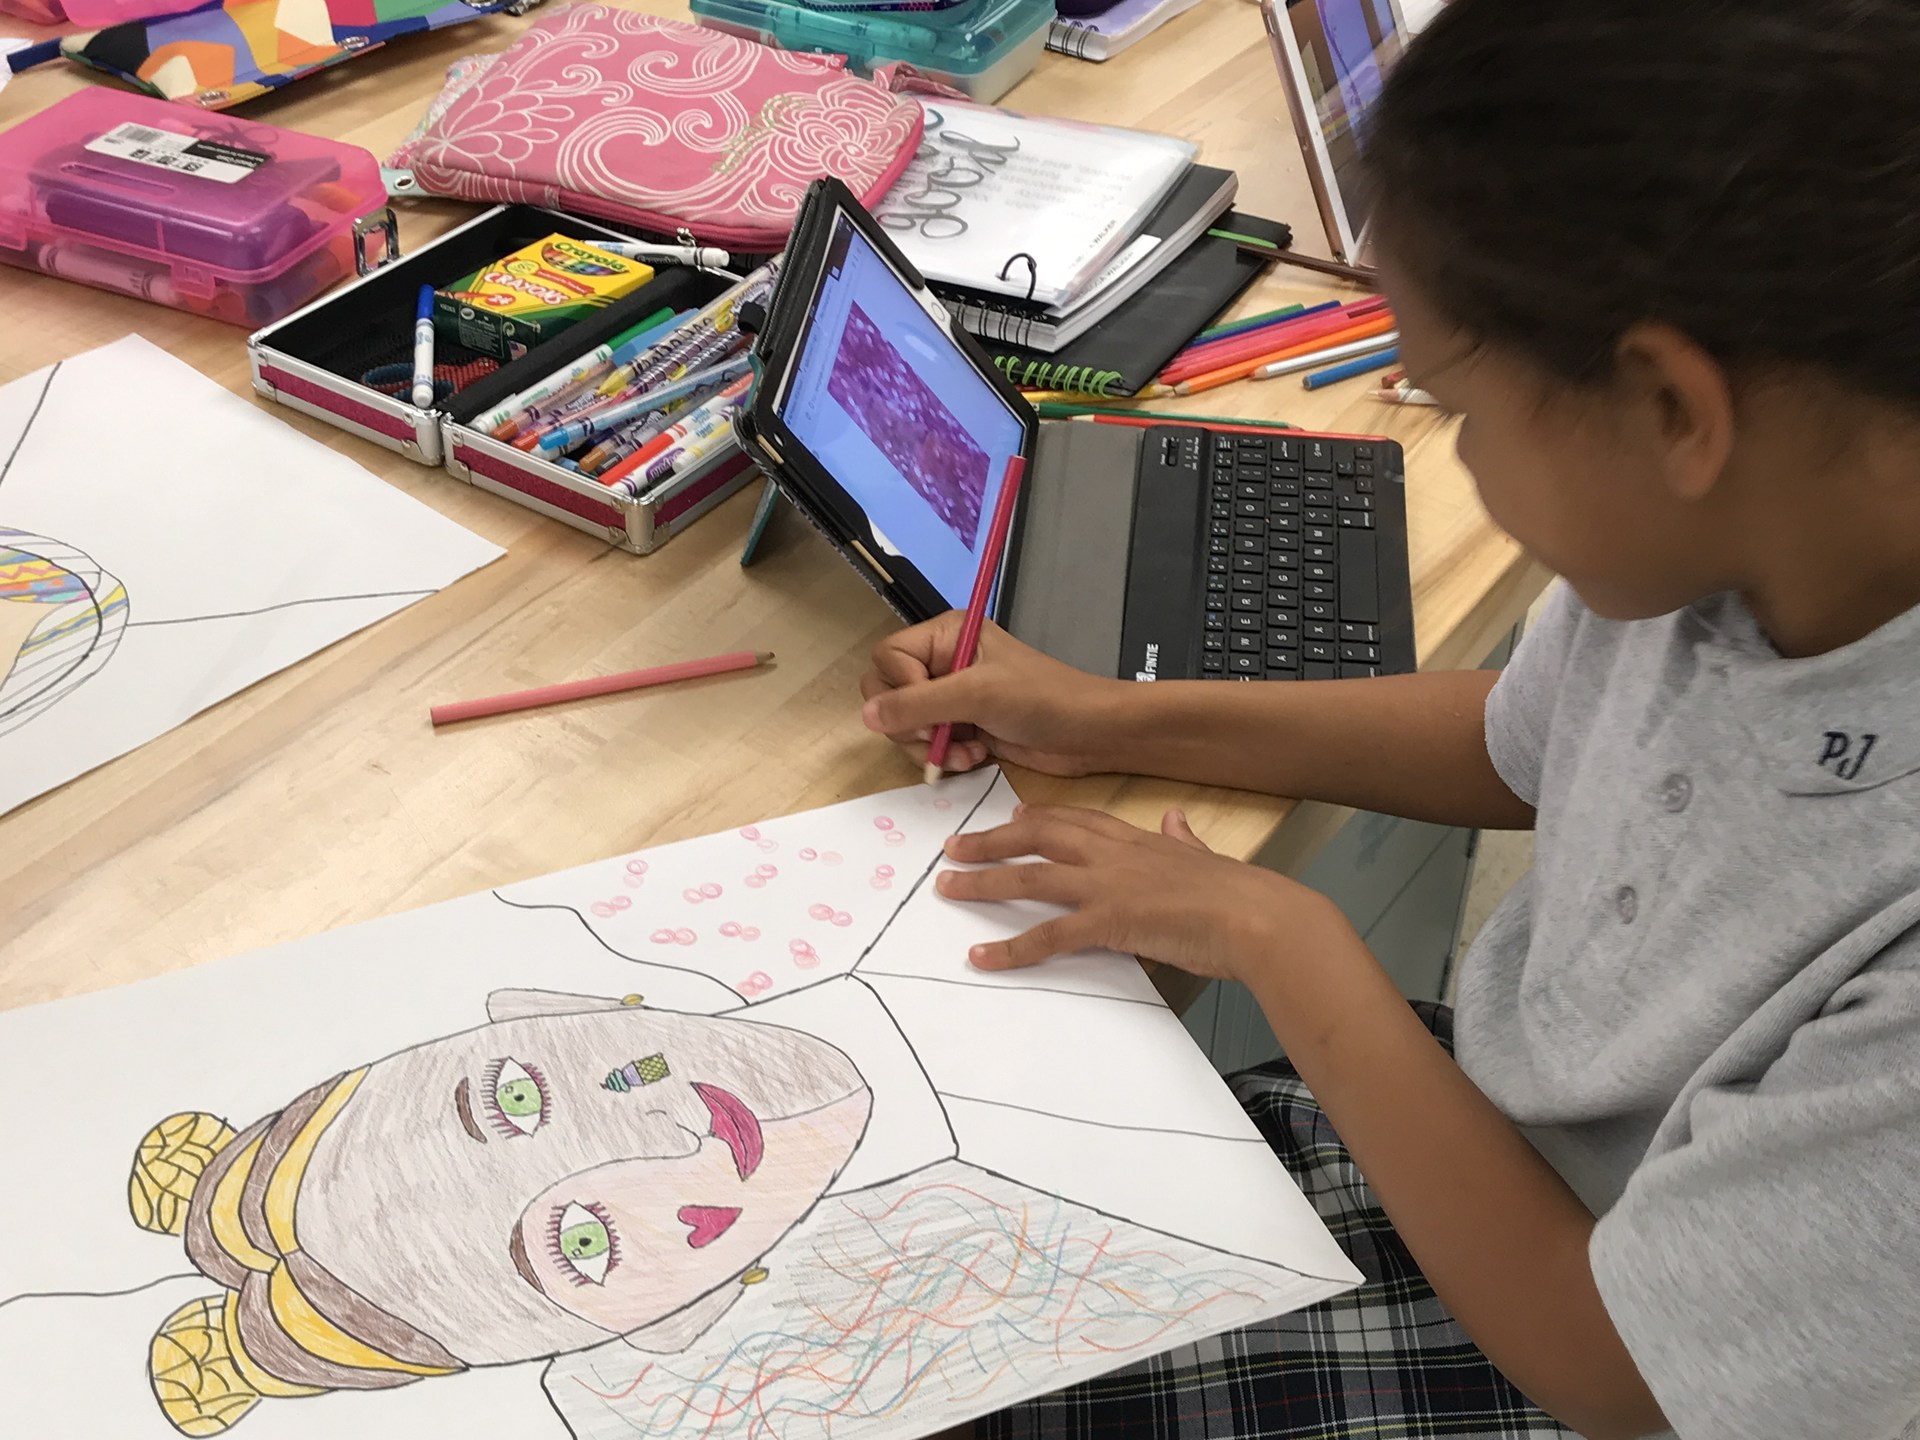 Girl draws picture while looking at iPad